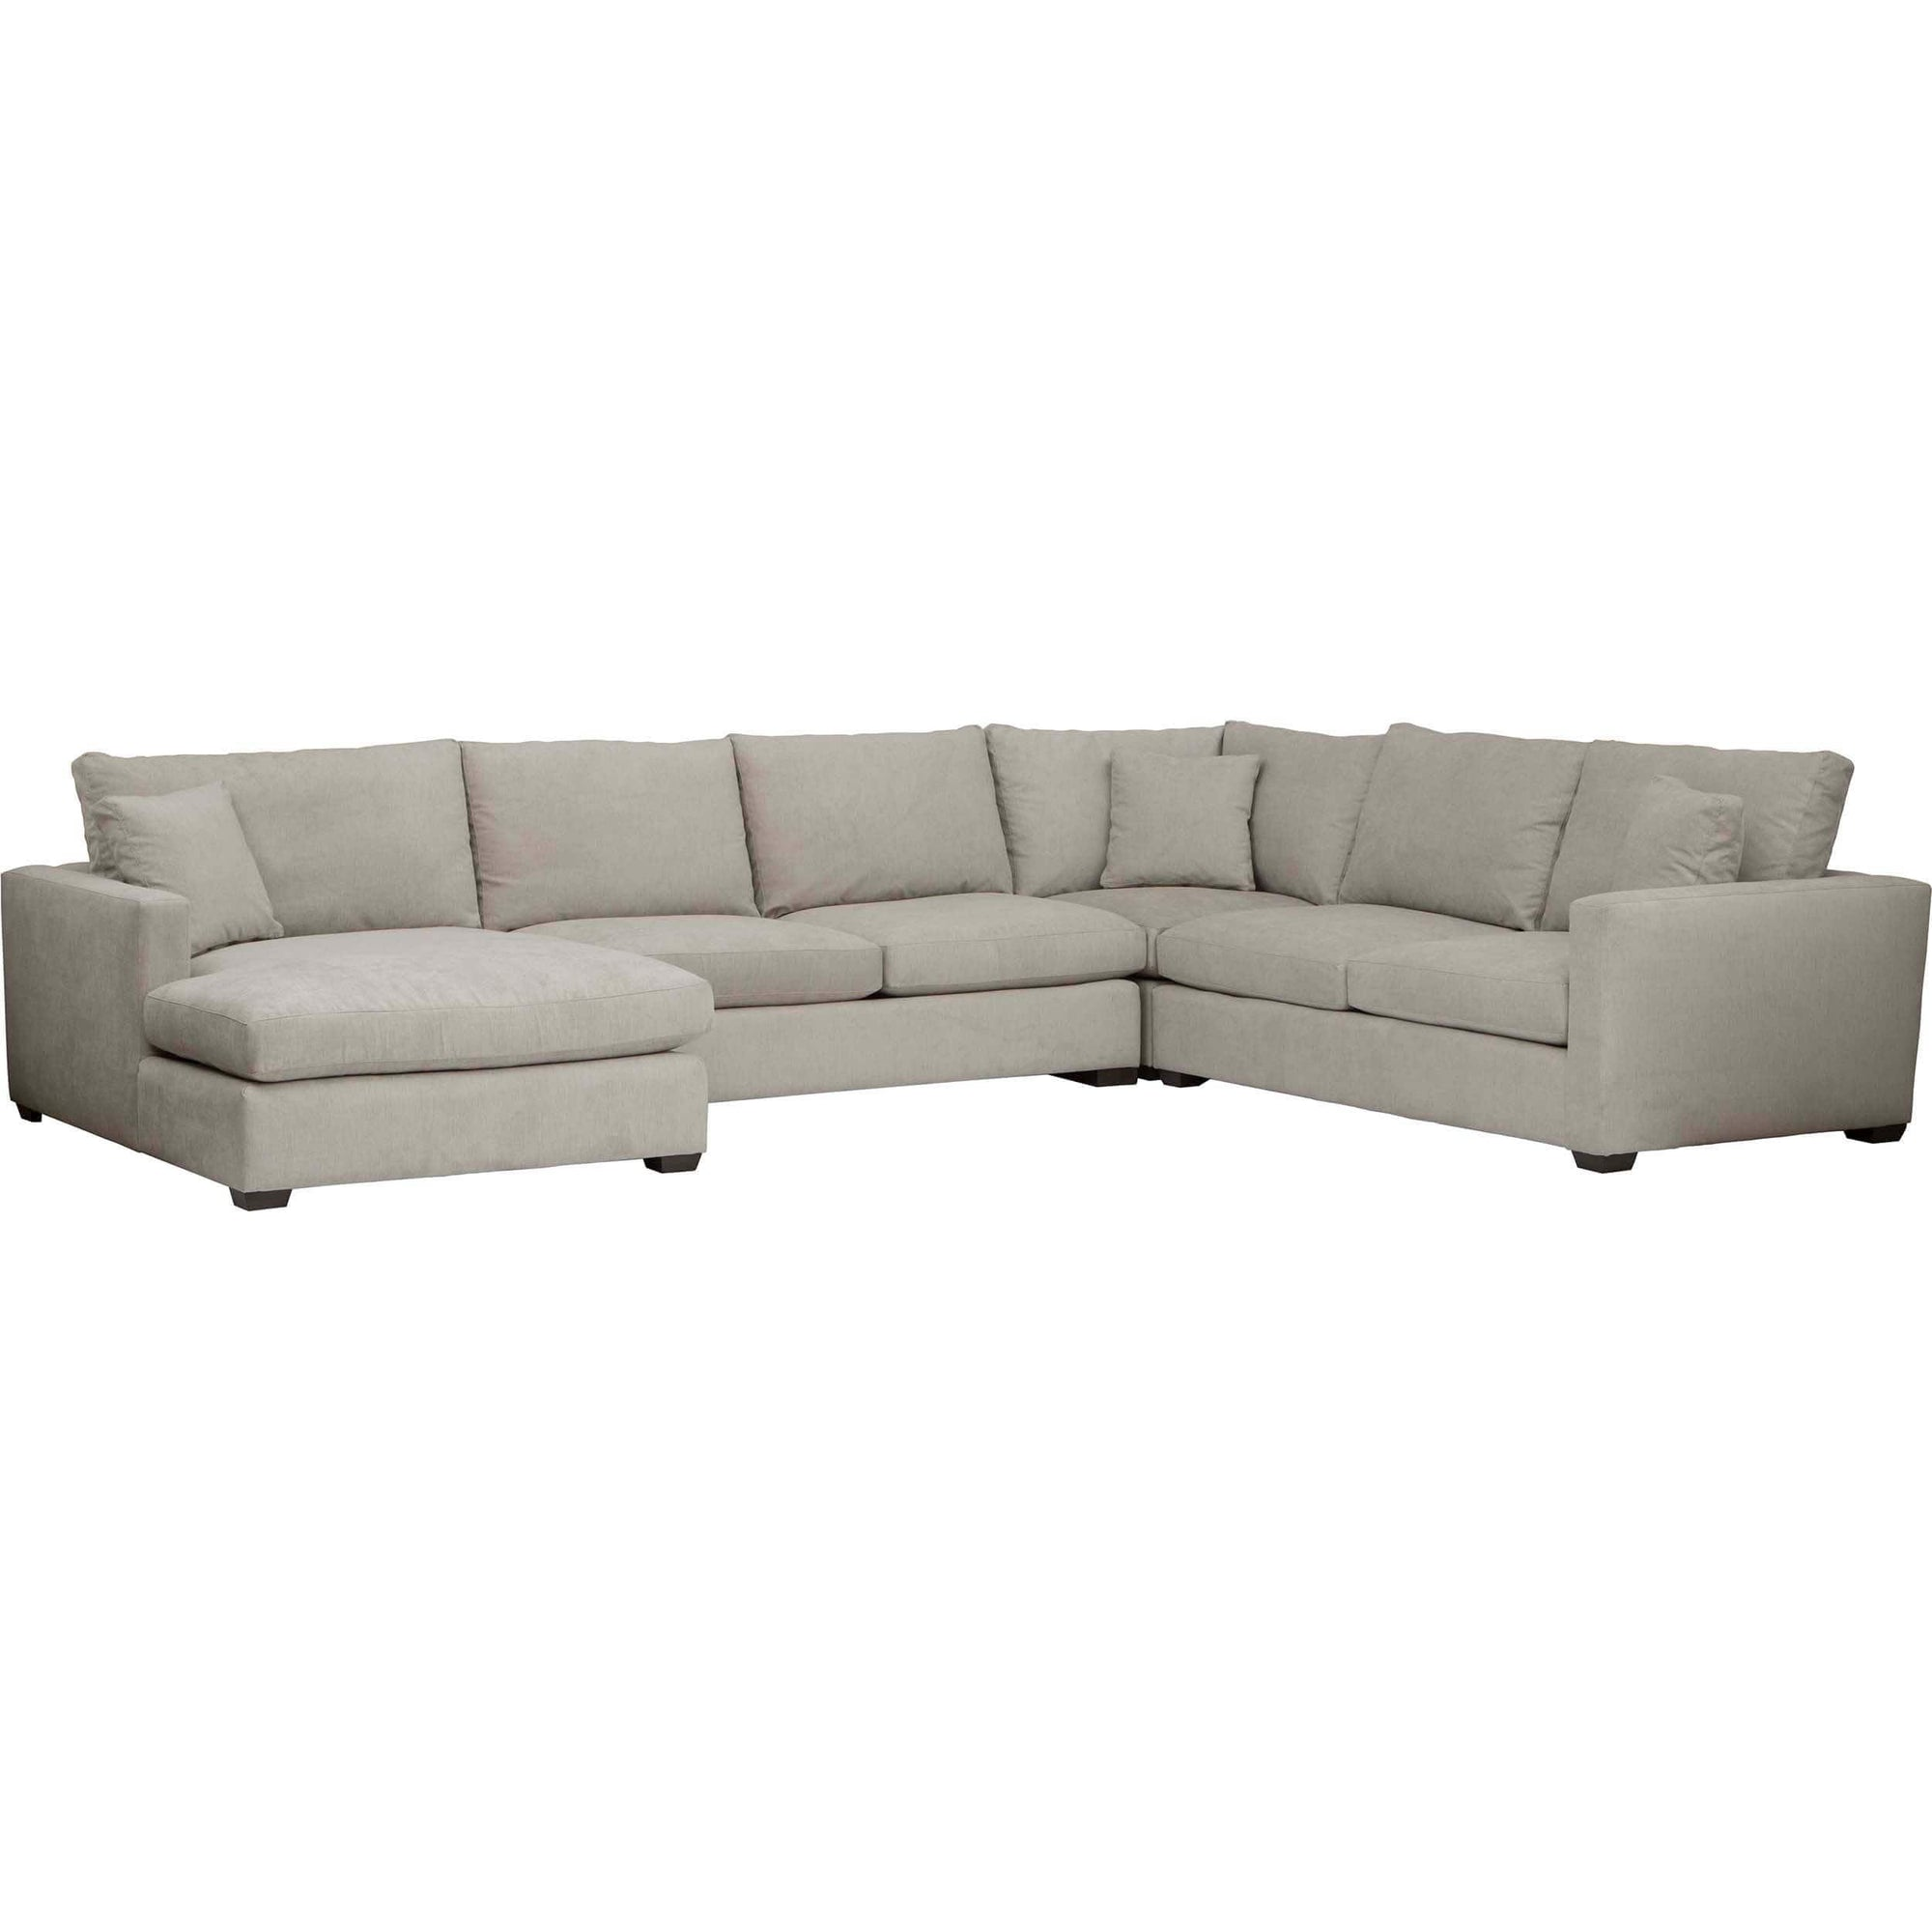 Fabulous Gage Sectional Graceland Sorrell High Fashion Home Download Free Architecture Designs Rallybritishbridgeorg